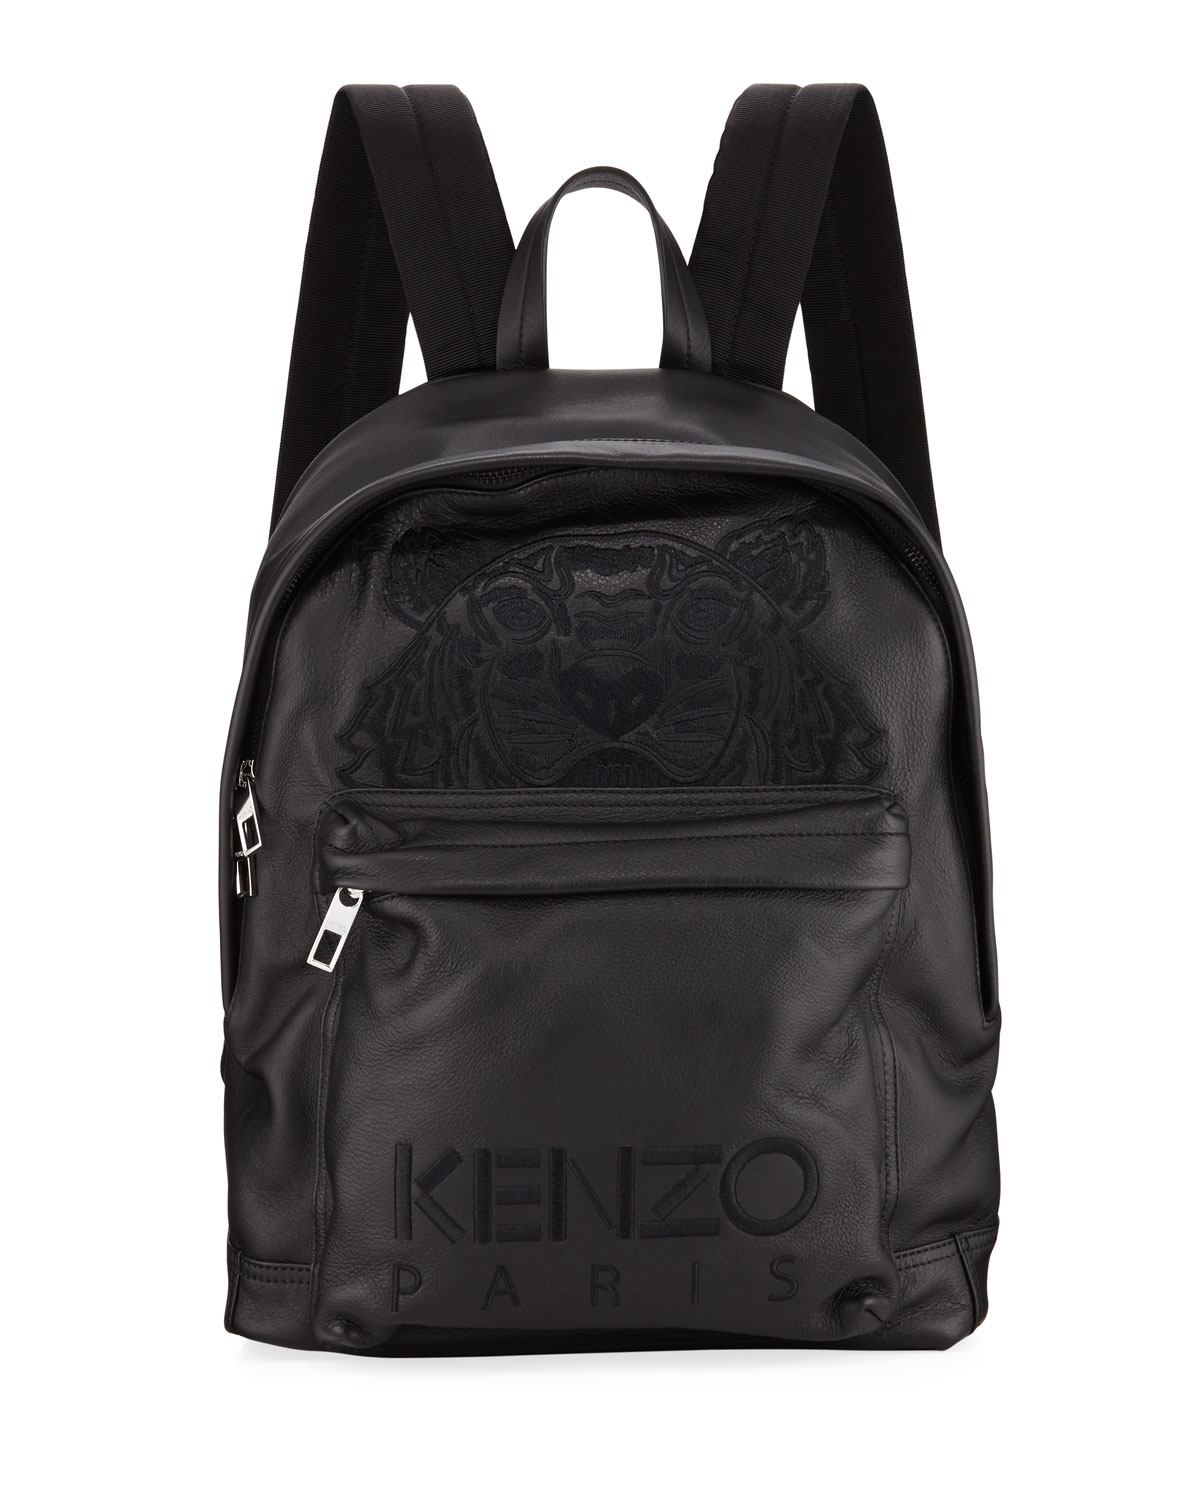 Kenzo Men s Tiger-Embroidered Leather Backpack  74bf866728dfd